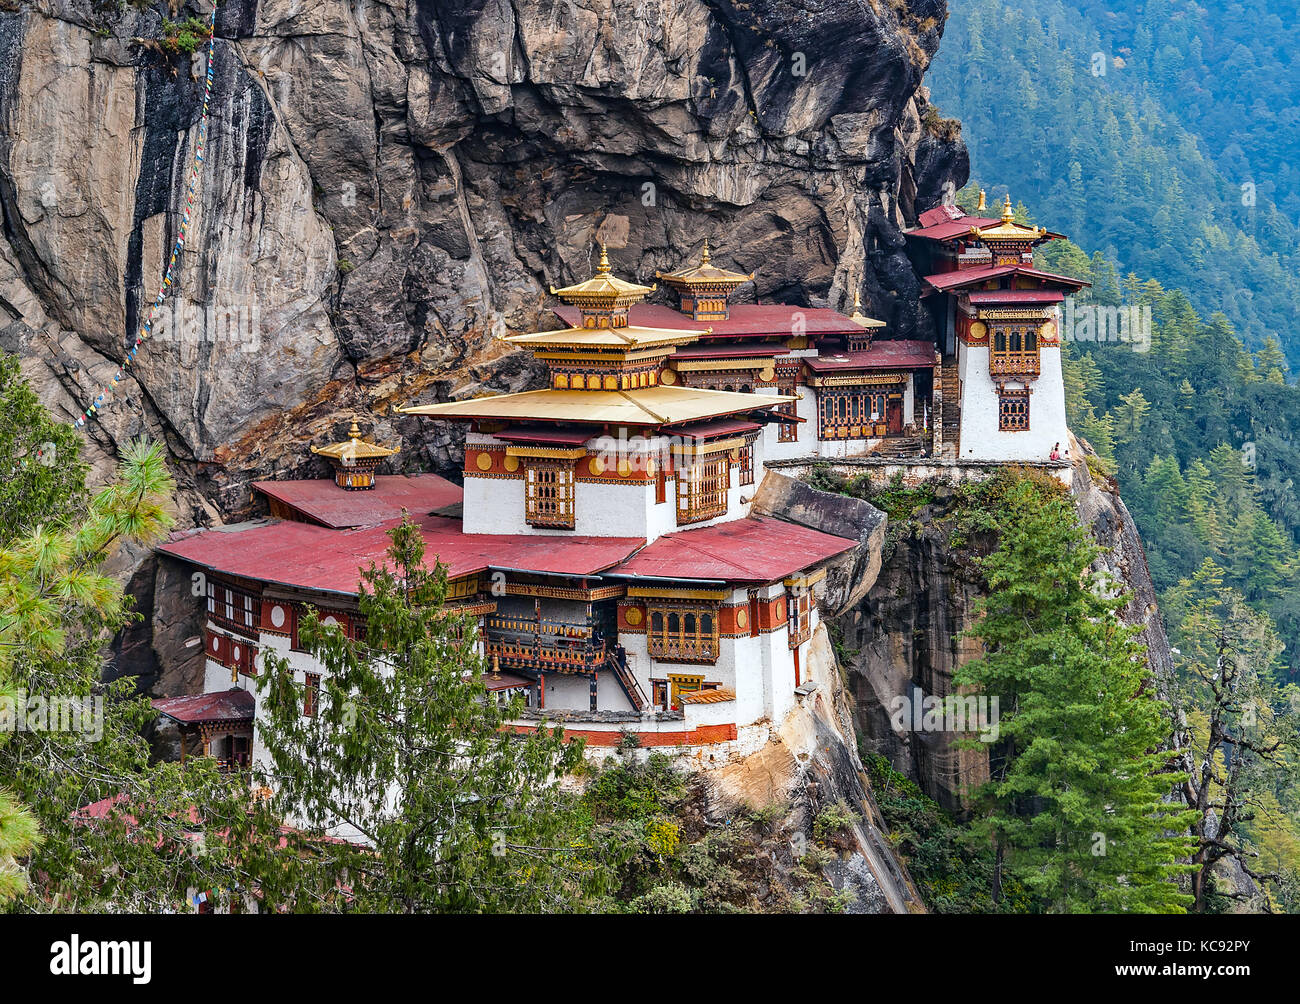 Paro Taktsang: The Tiger's Nest Monastery - Bhutan - Stock Image